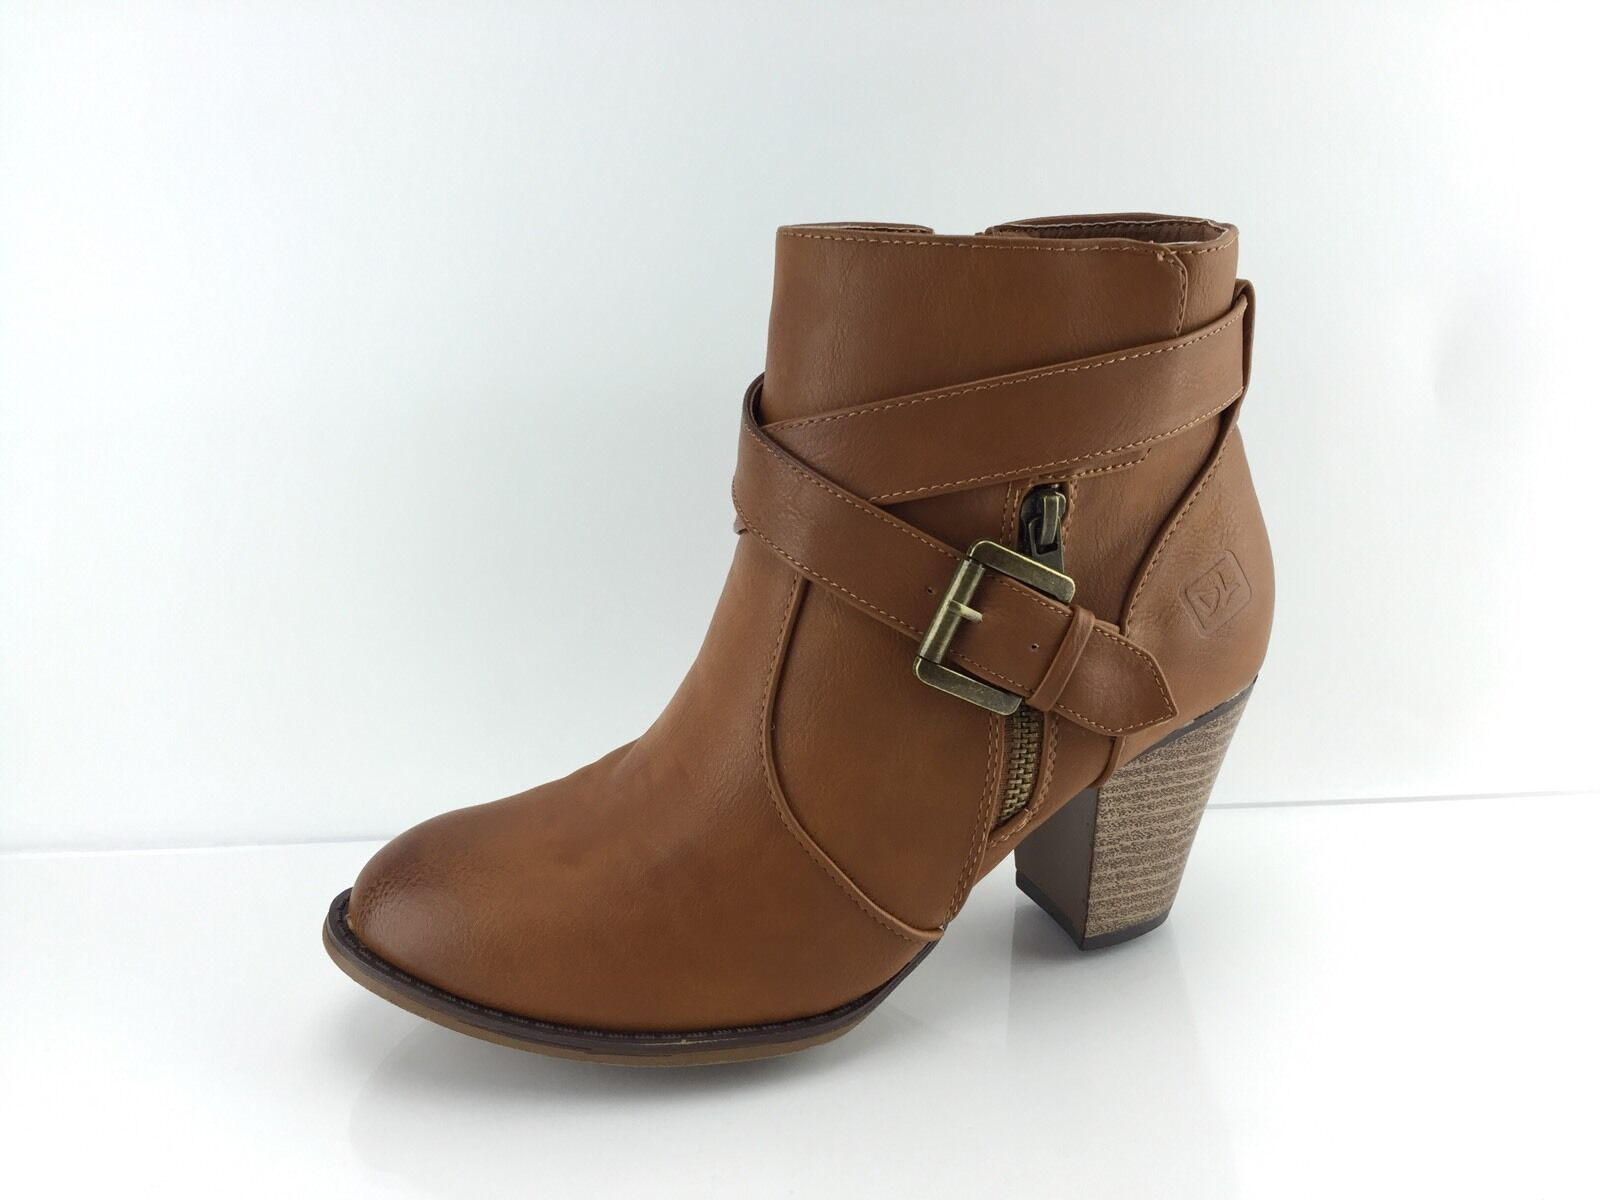 Dirty Laundry Women's Brown Ankle Boots 8